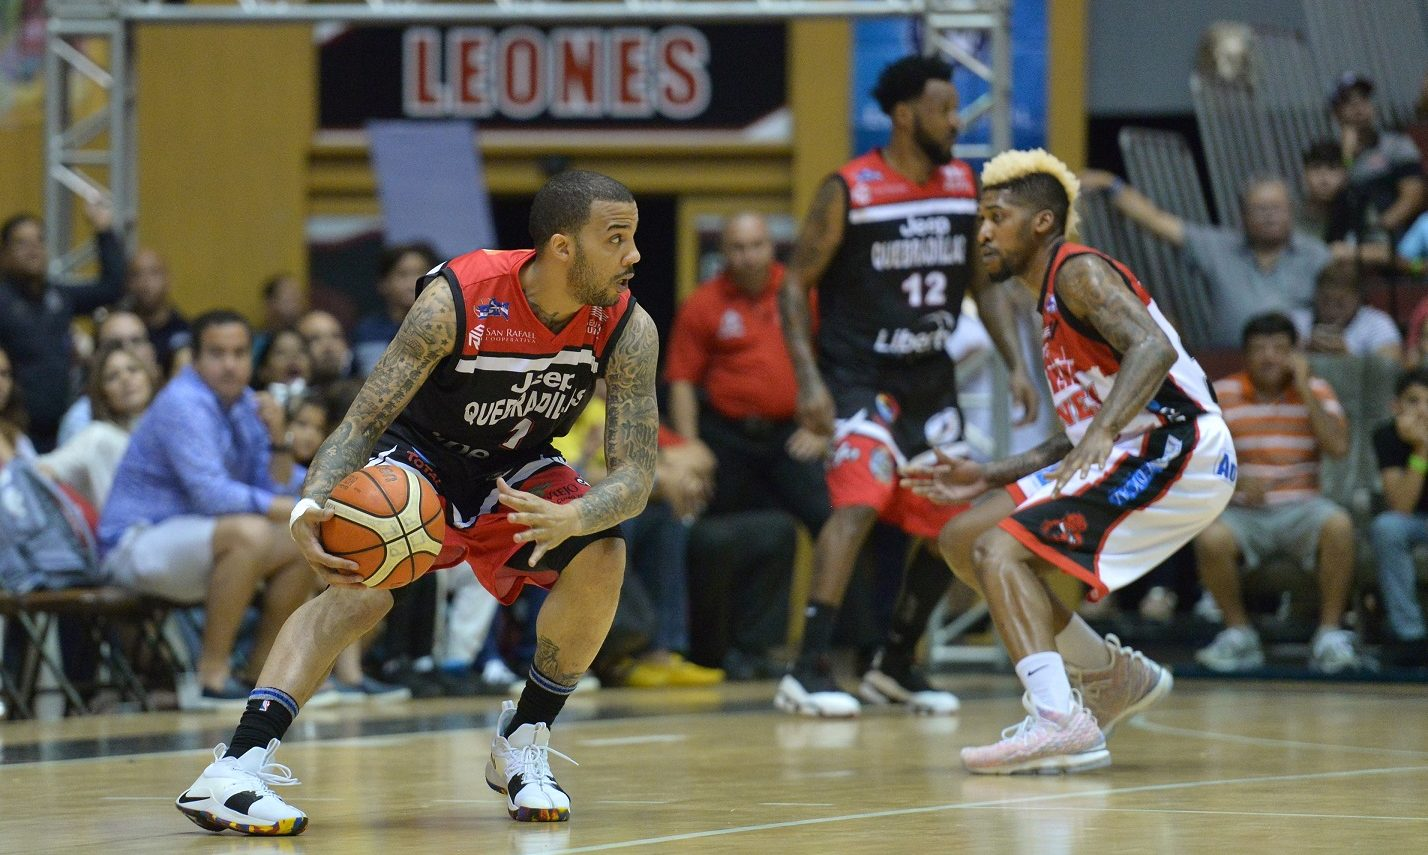 Carlos Emory contuvo a Marcus William con su defensa.